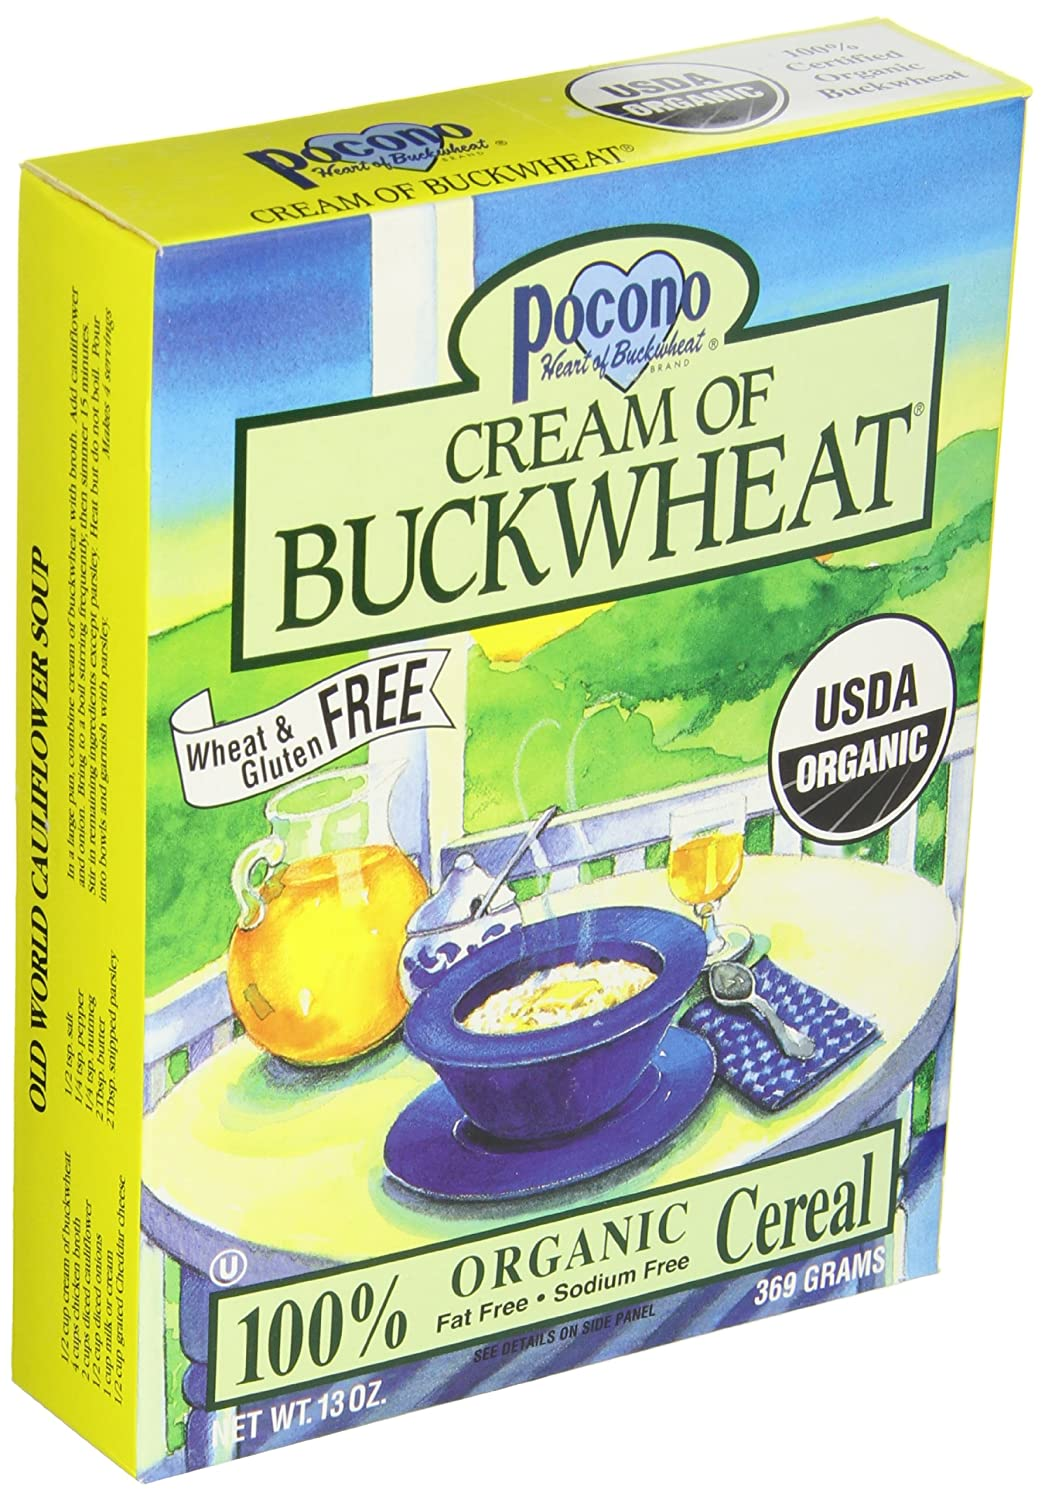 Pocono Organic Cream of Buckwheat Cereal (6x13 oz.)